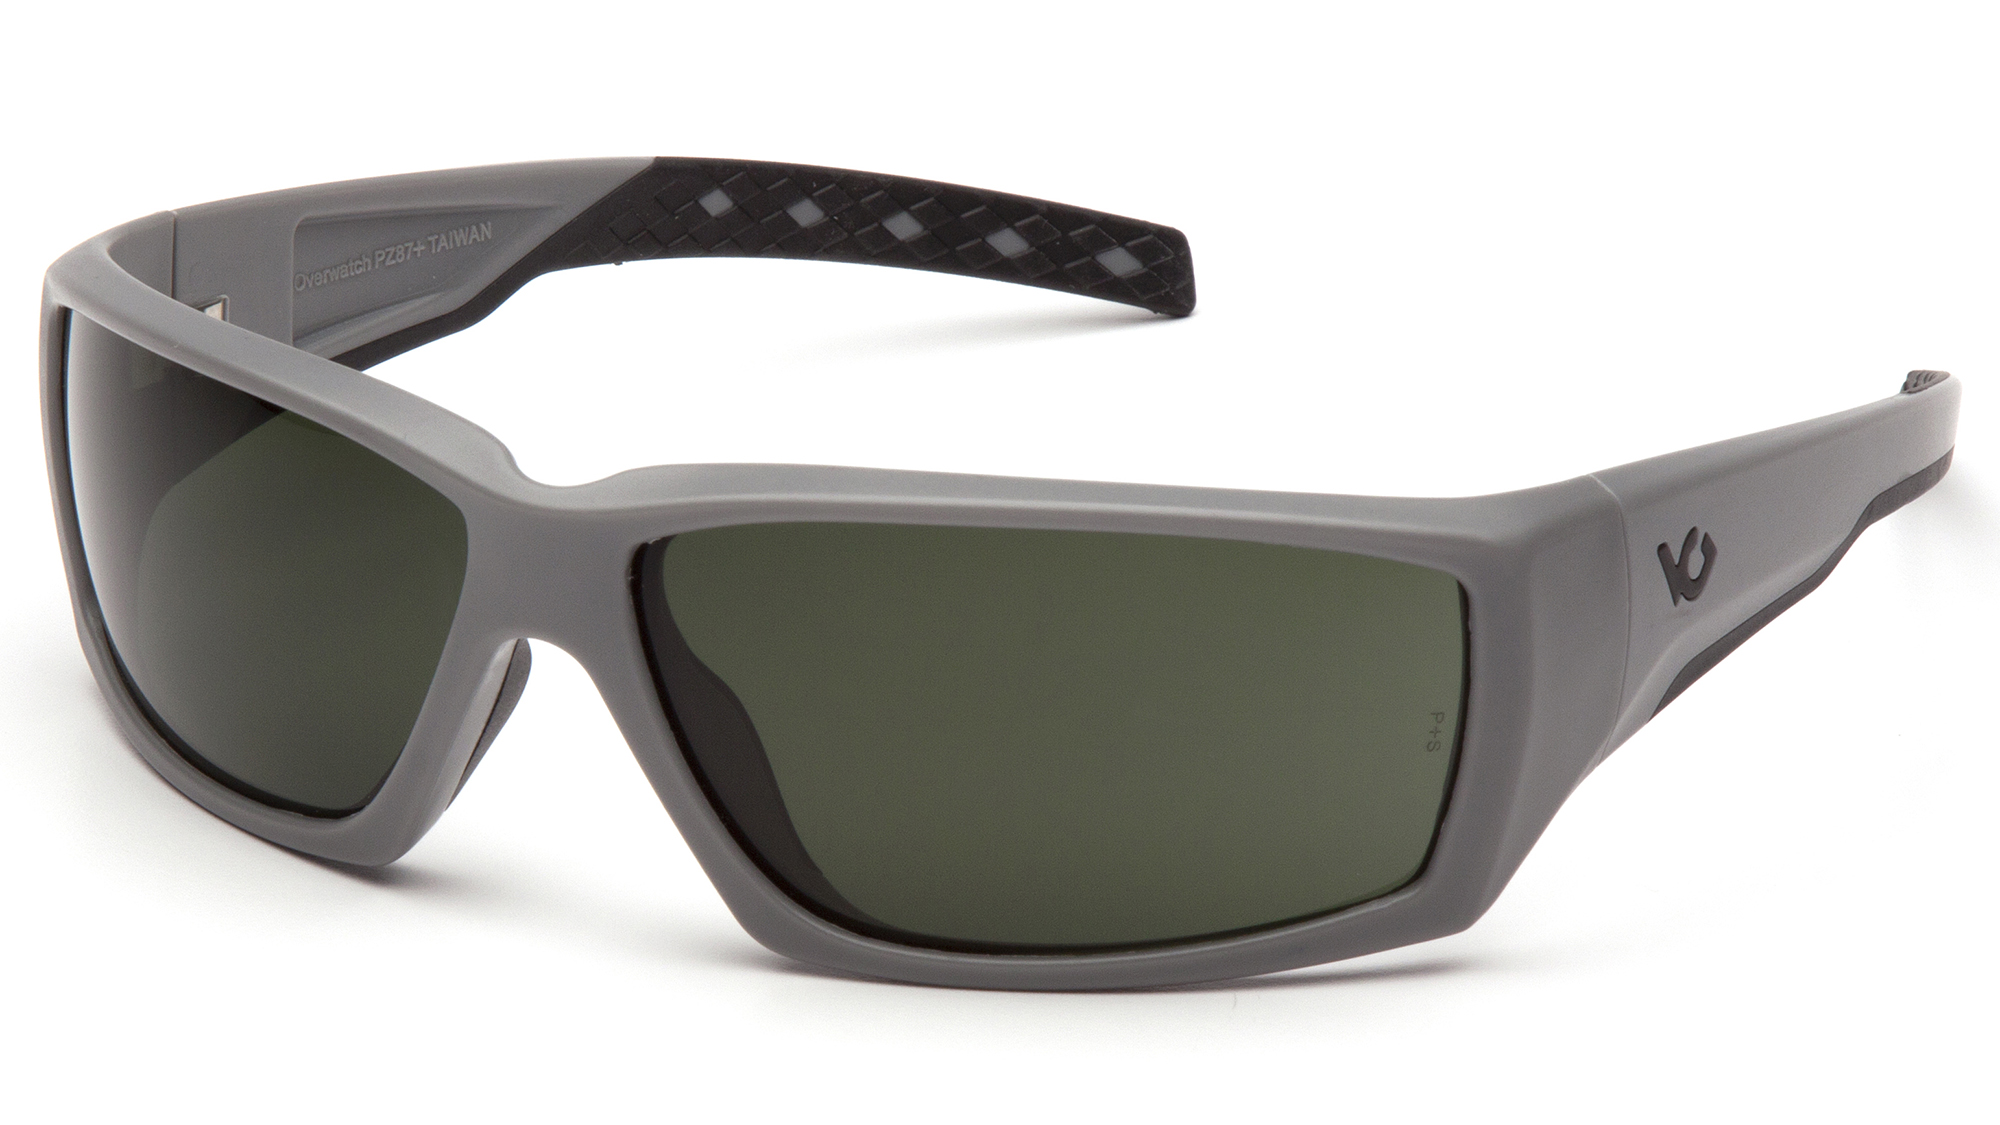 Venturegear Tactical - Overwatch Safety Glasses - Forest Gray Anti-Fog Lens Urban Gray Frame